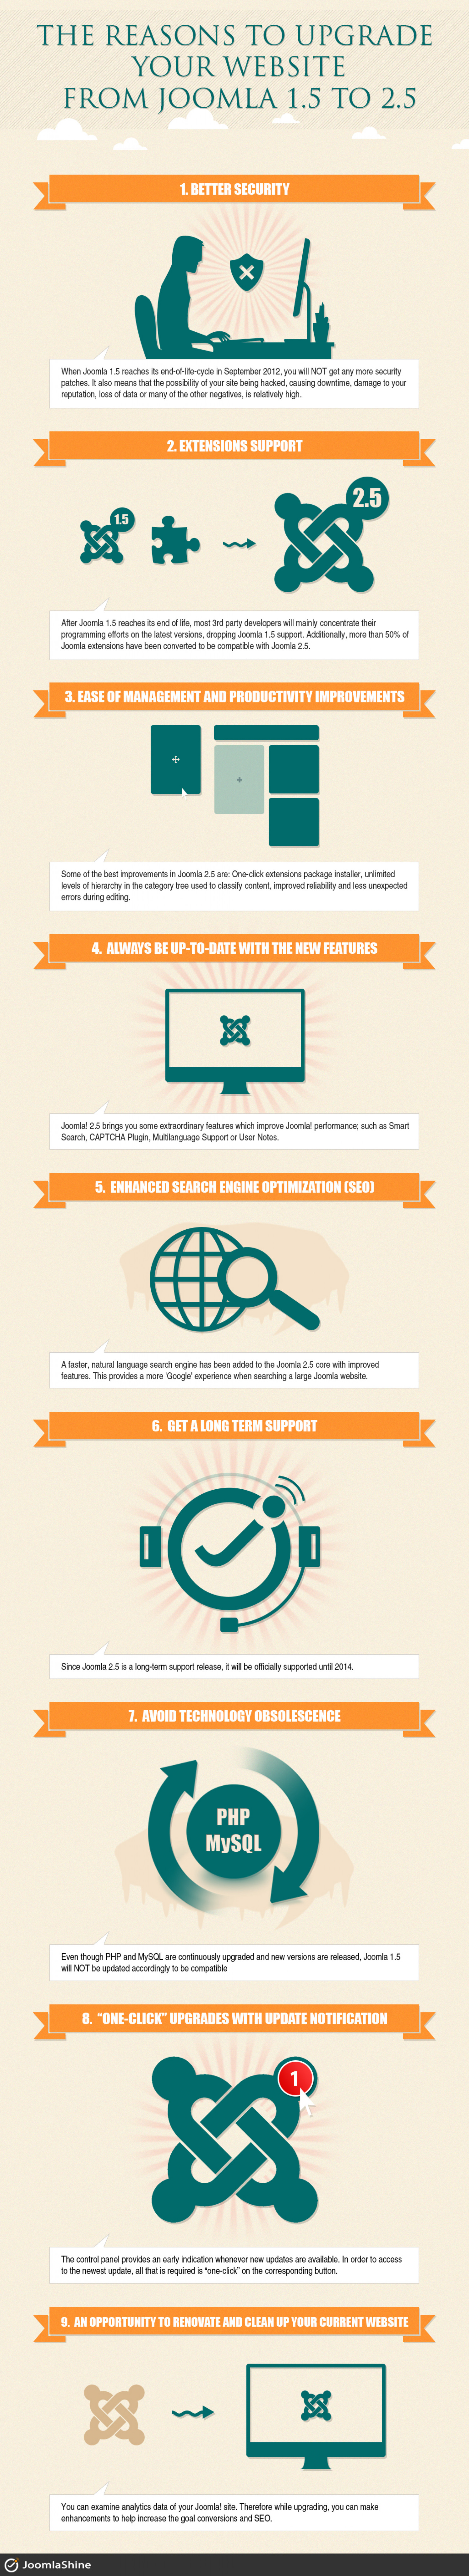 The reason to upgrade your website from Joomla 1.5 to 2.5 Infographic